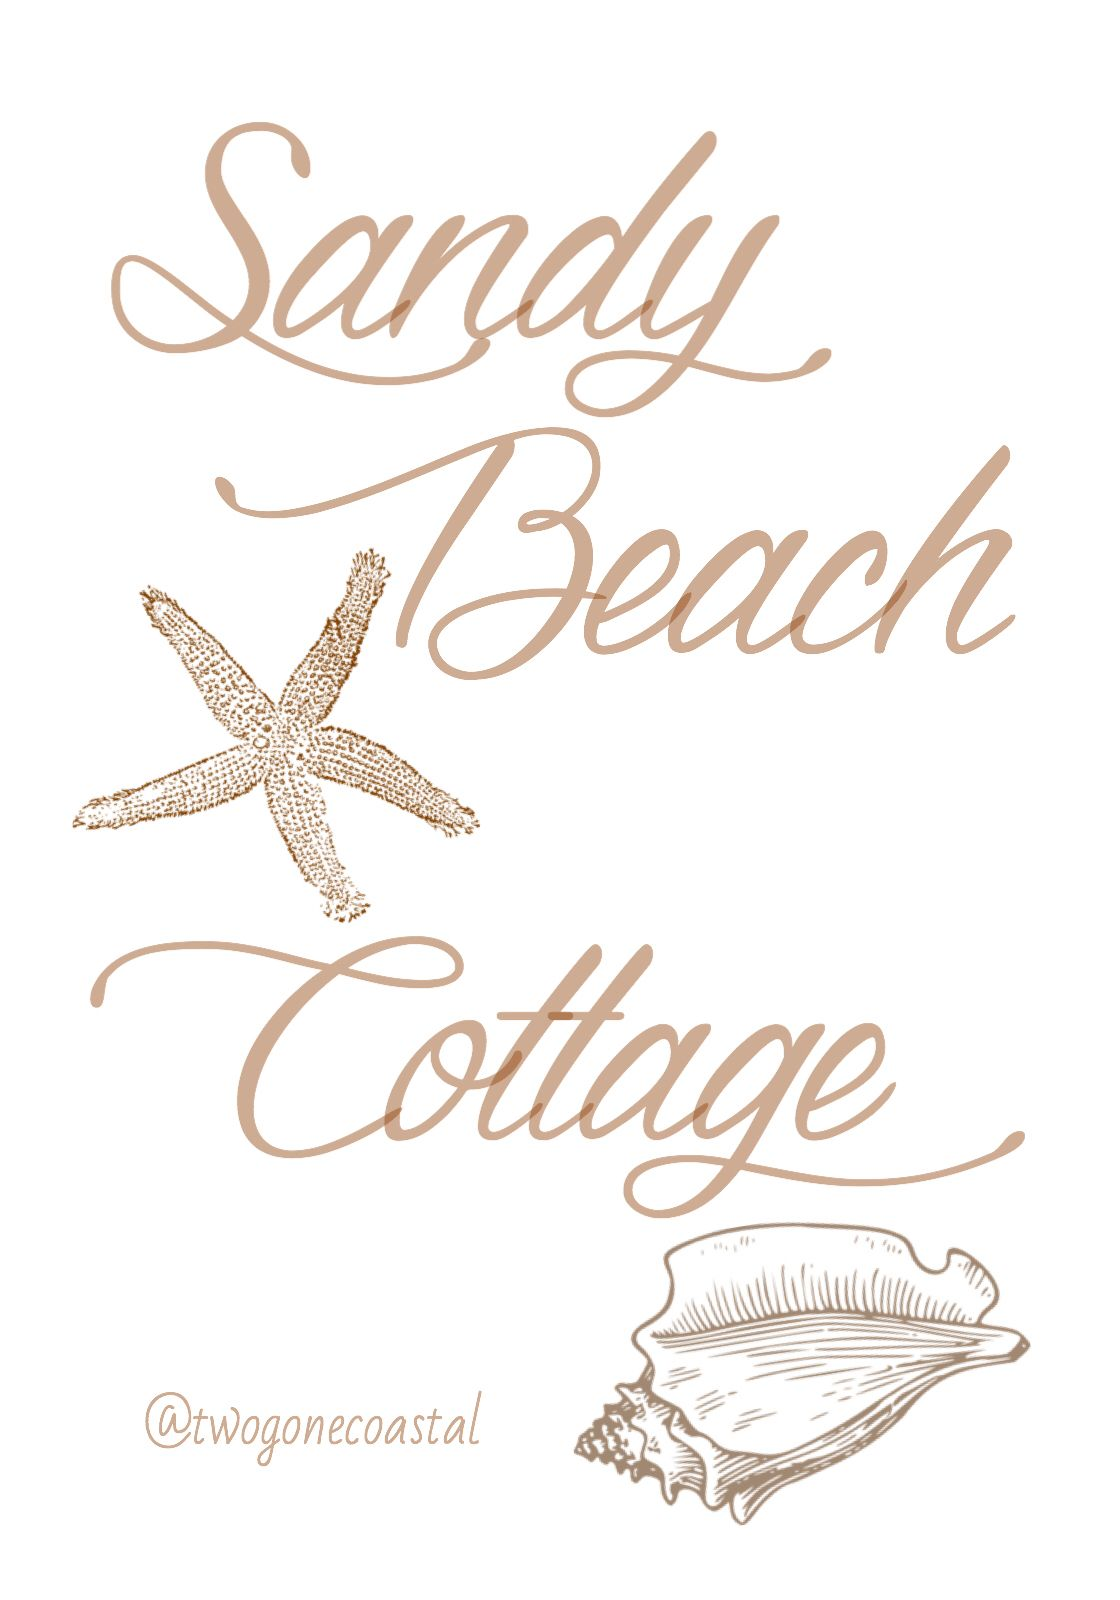 I loved the theme today ... the board looked great.  I think I might need a new board♥  Next let's do a SANDY BEACH COTTAGE.